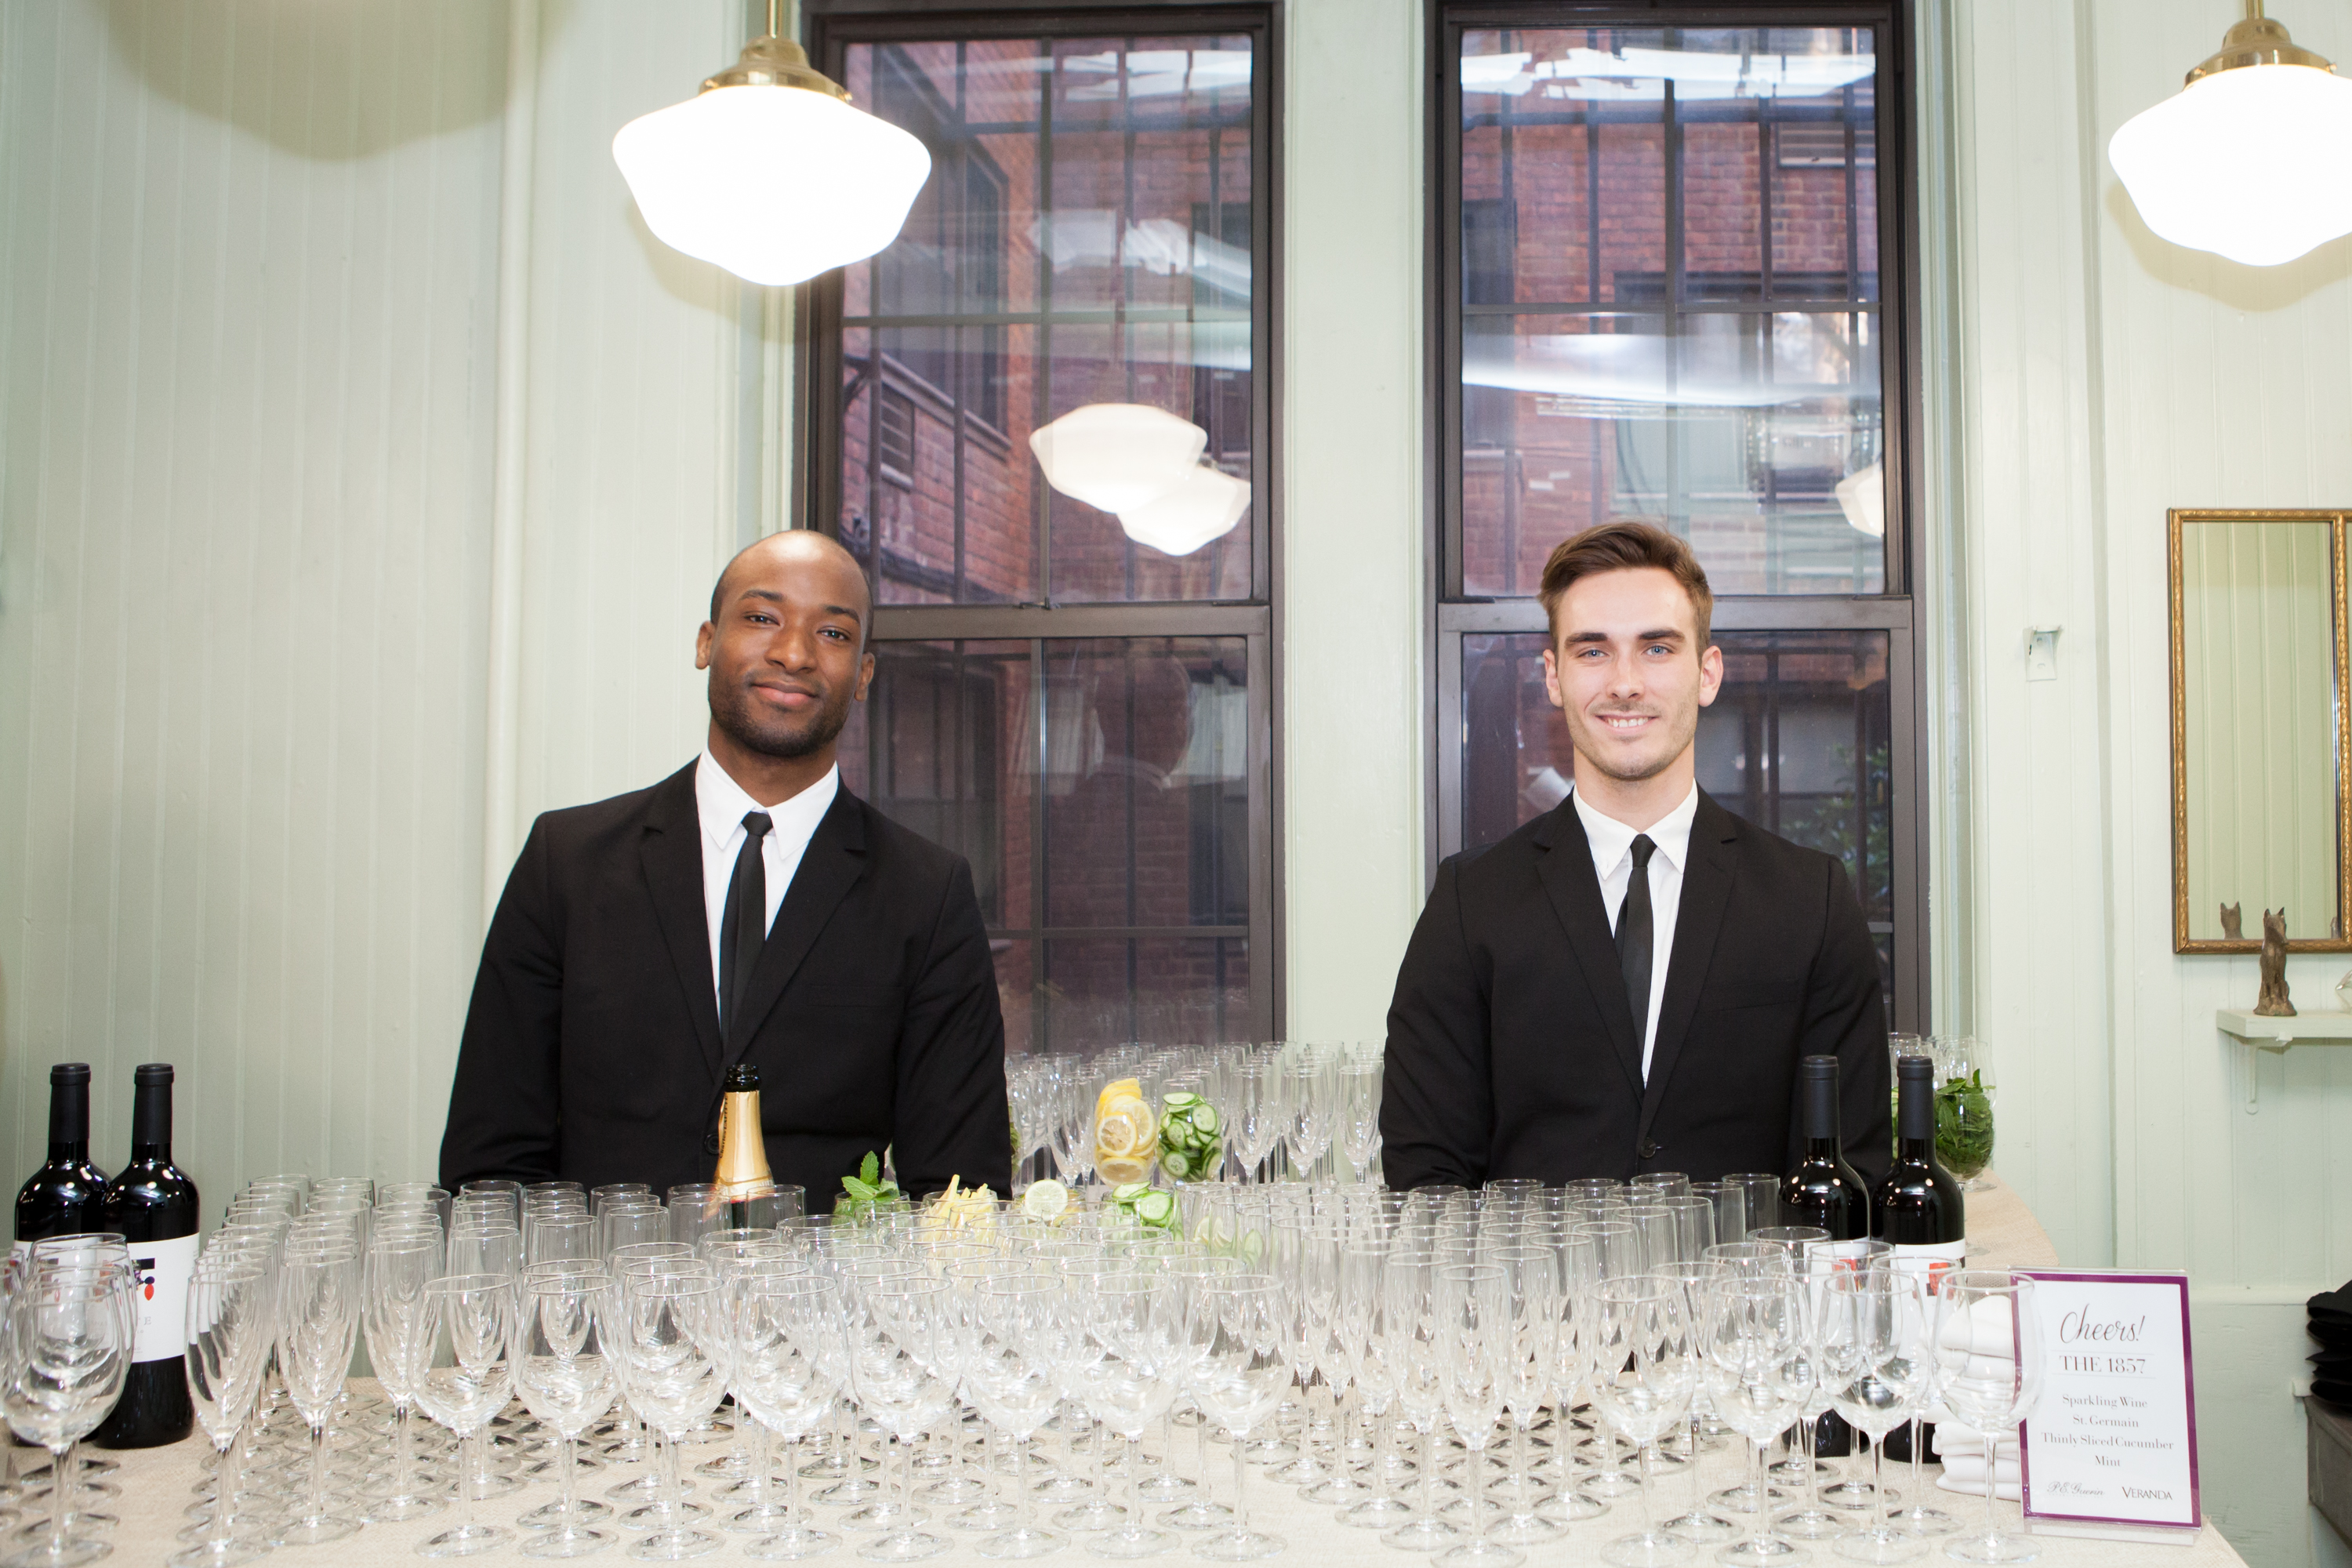 Guests enjoyed cocktails and hors d'oeuvres from premier catering company Tastings NYC.